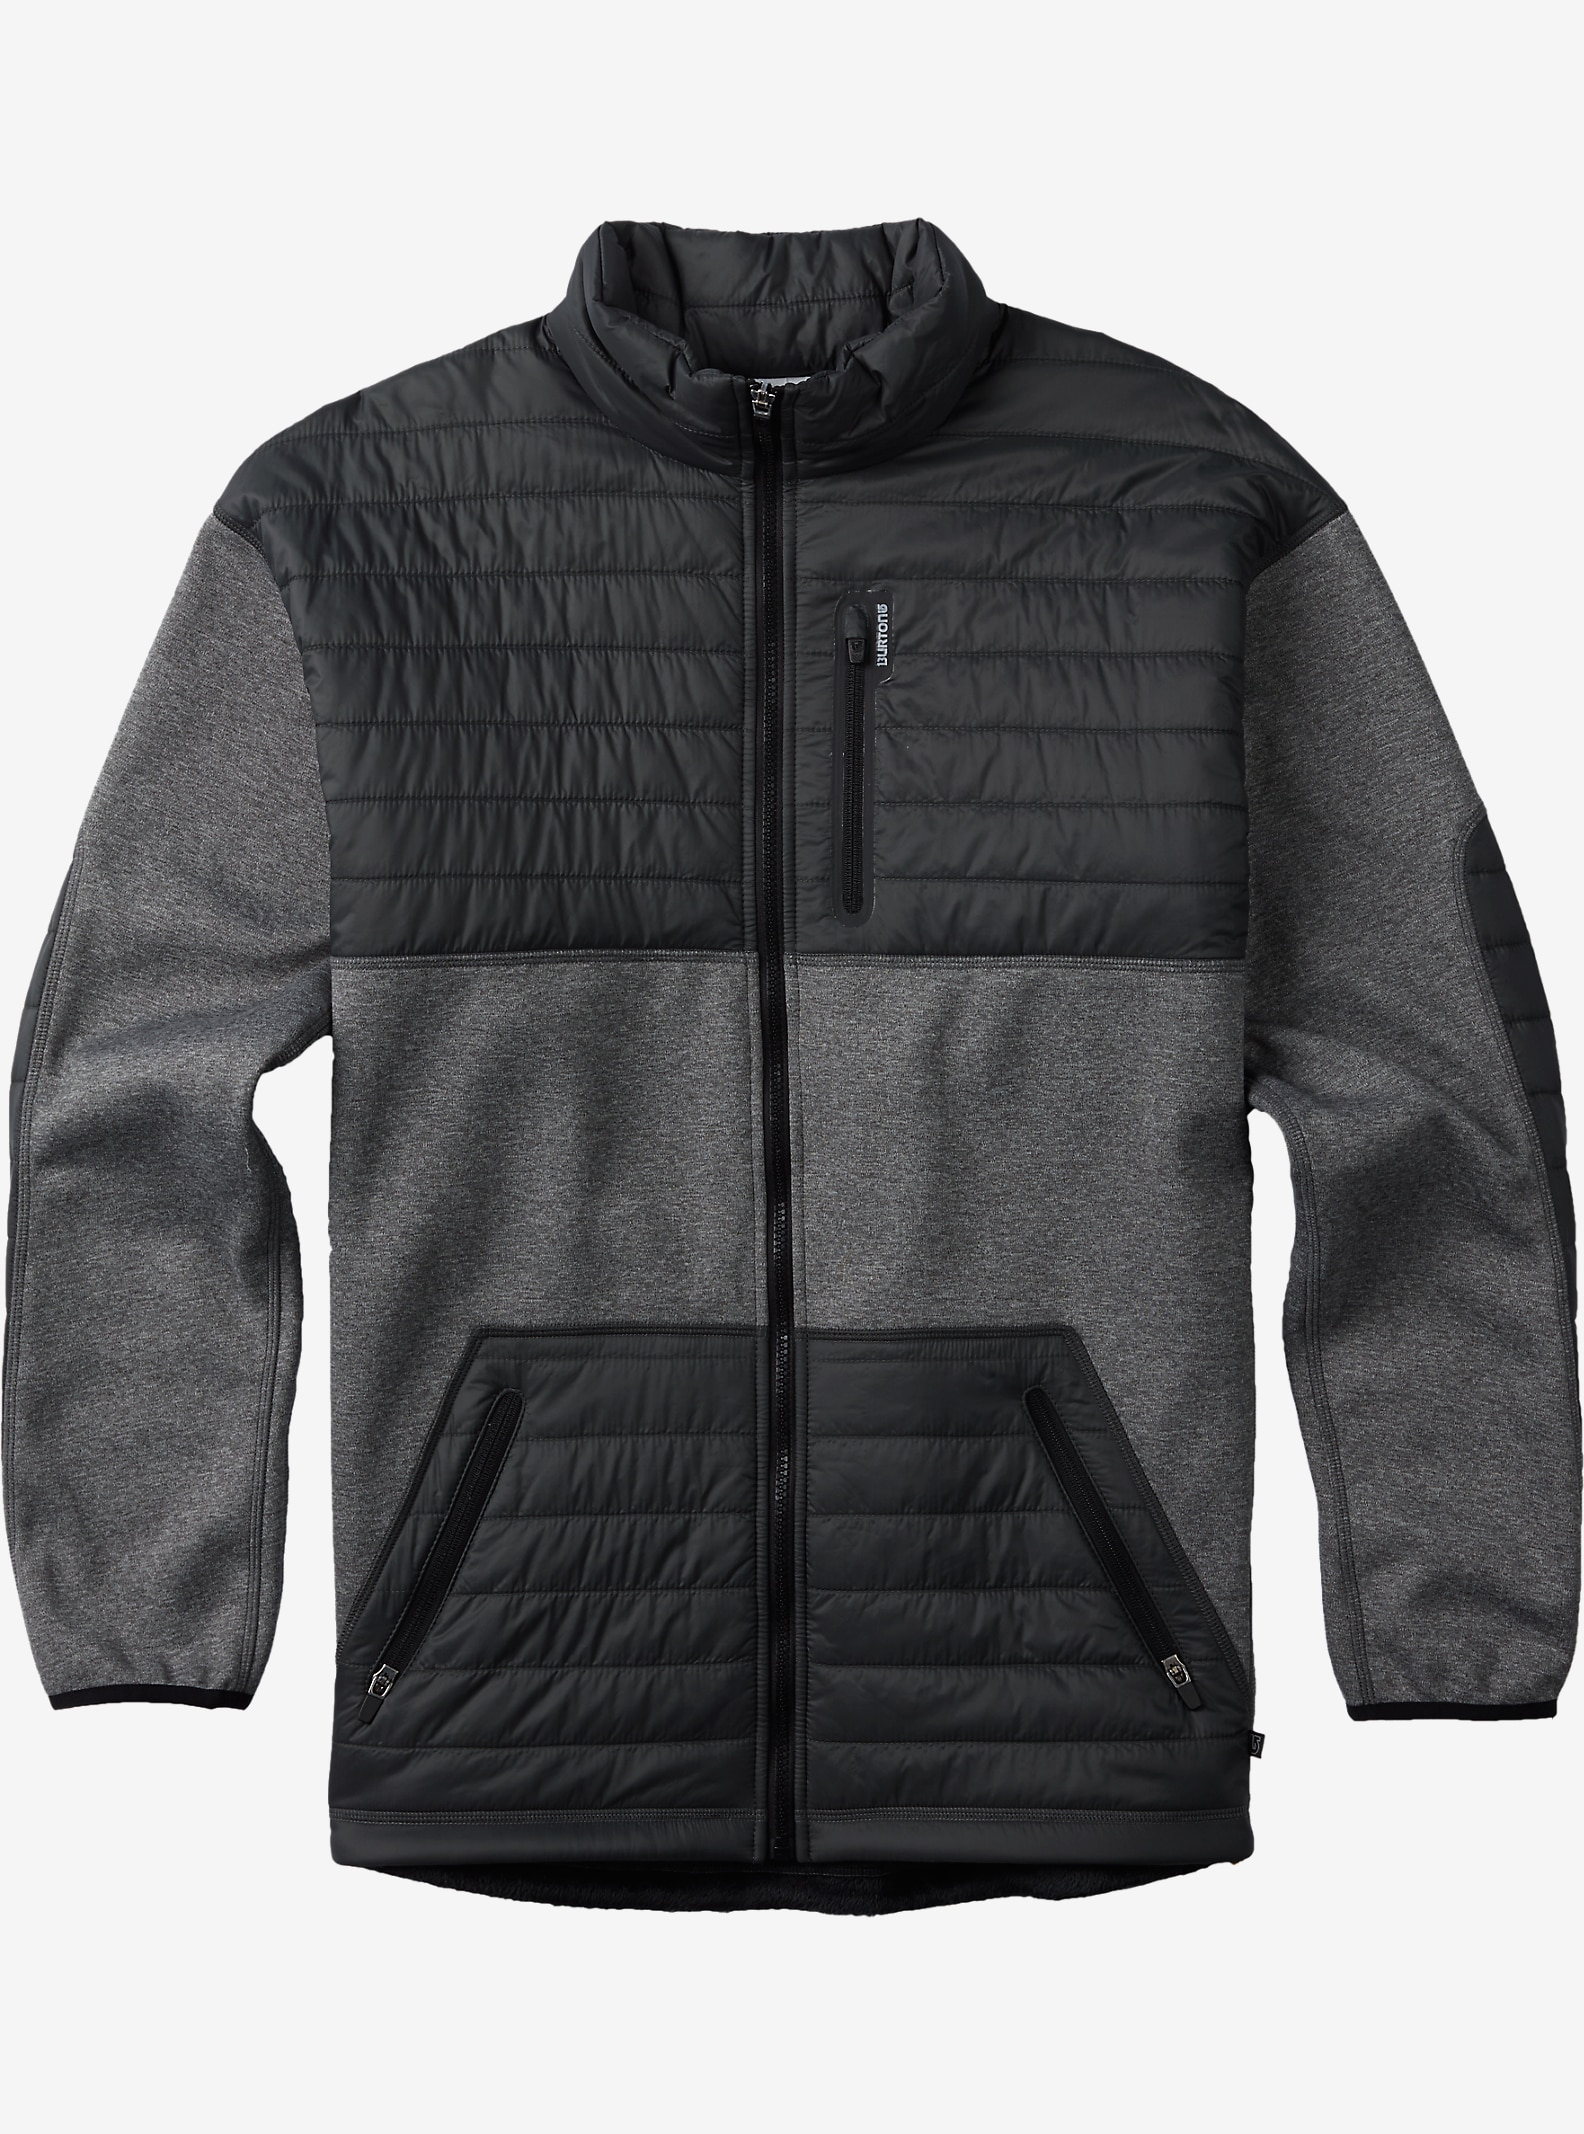 Burton Backside Jacket shown in True Black